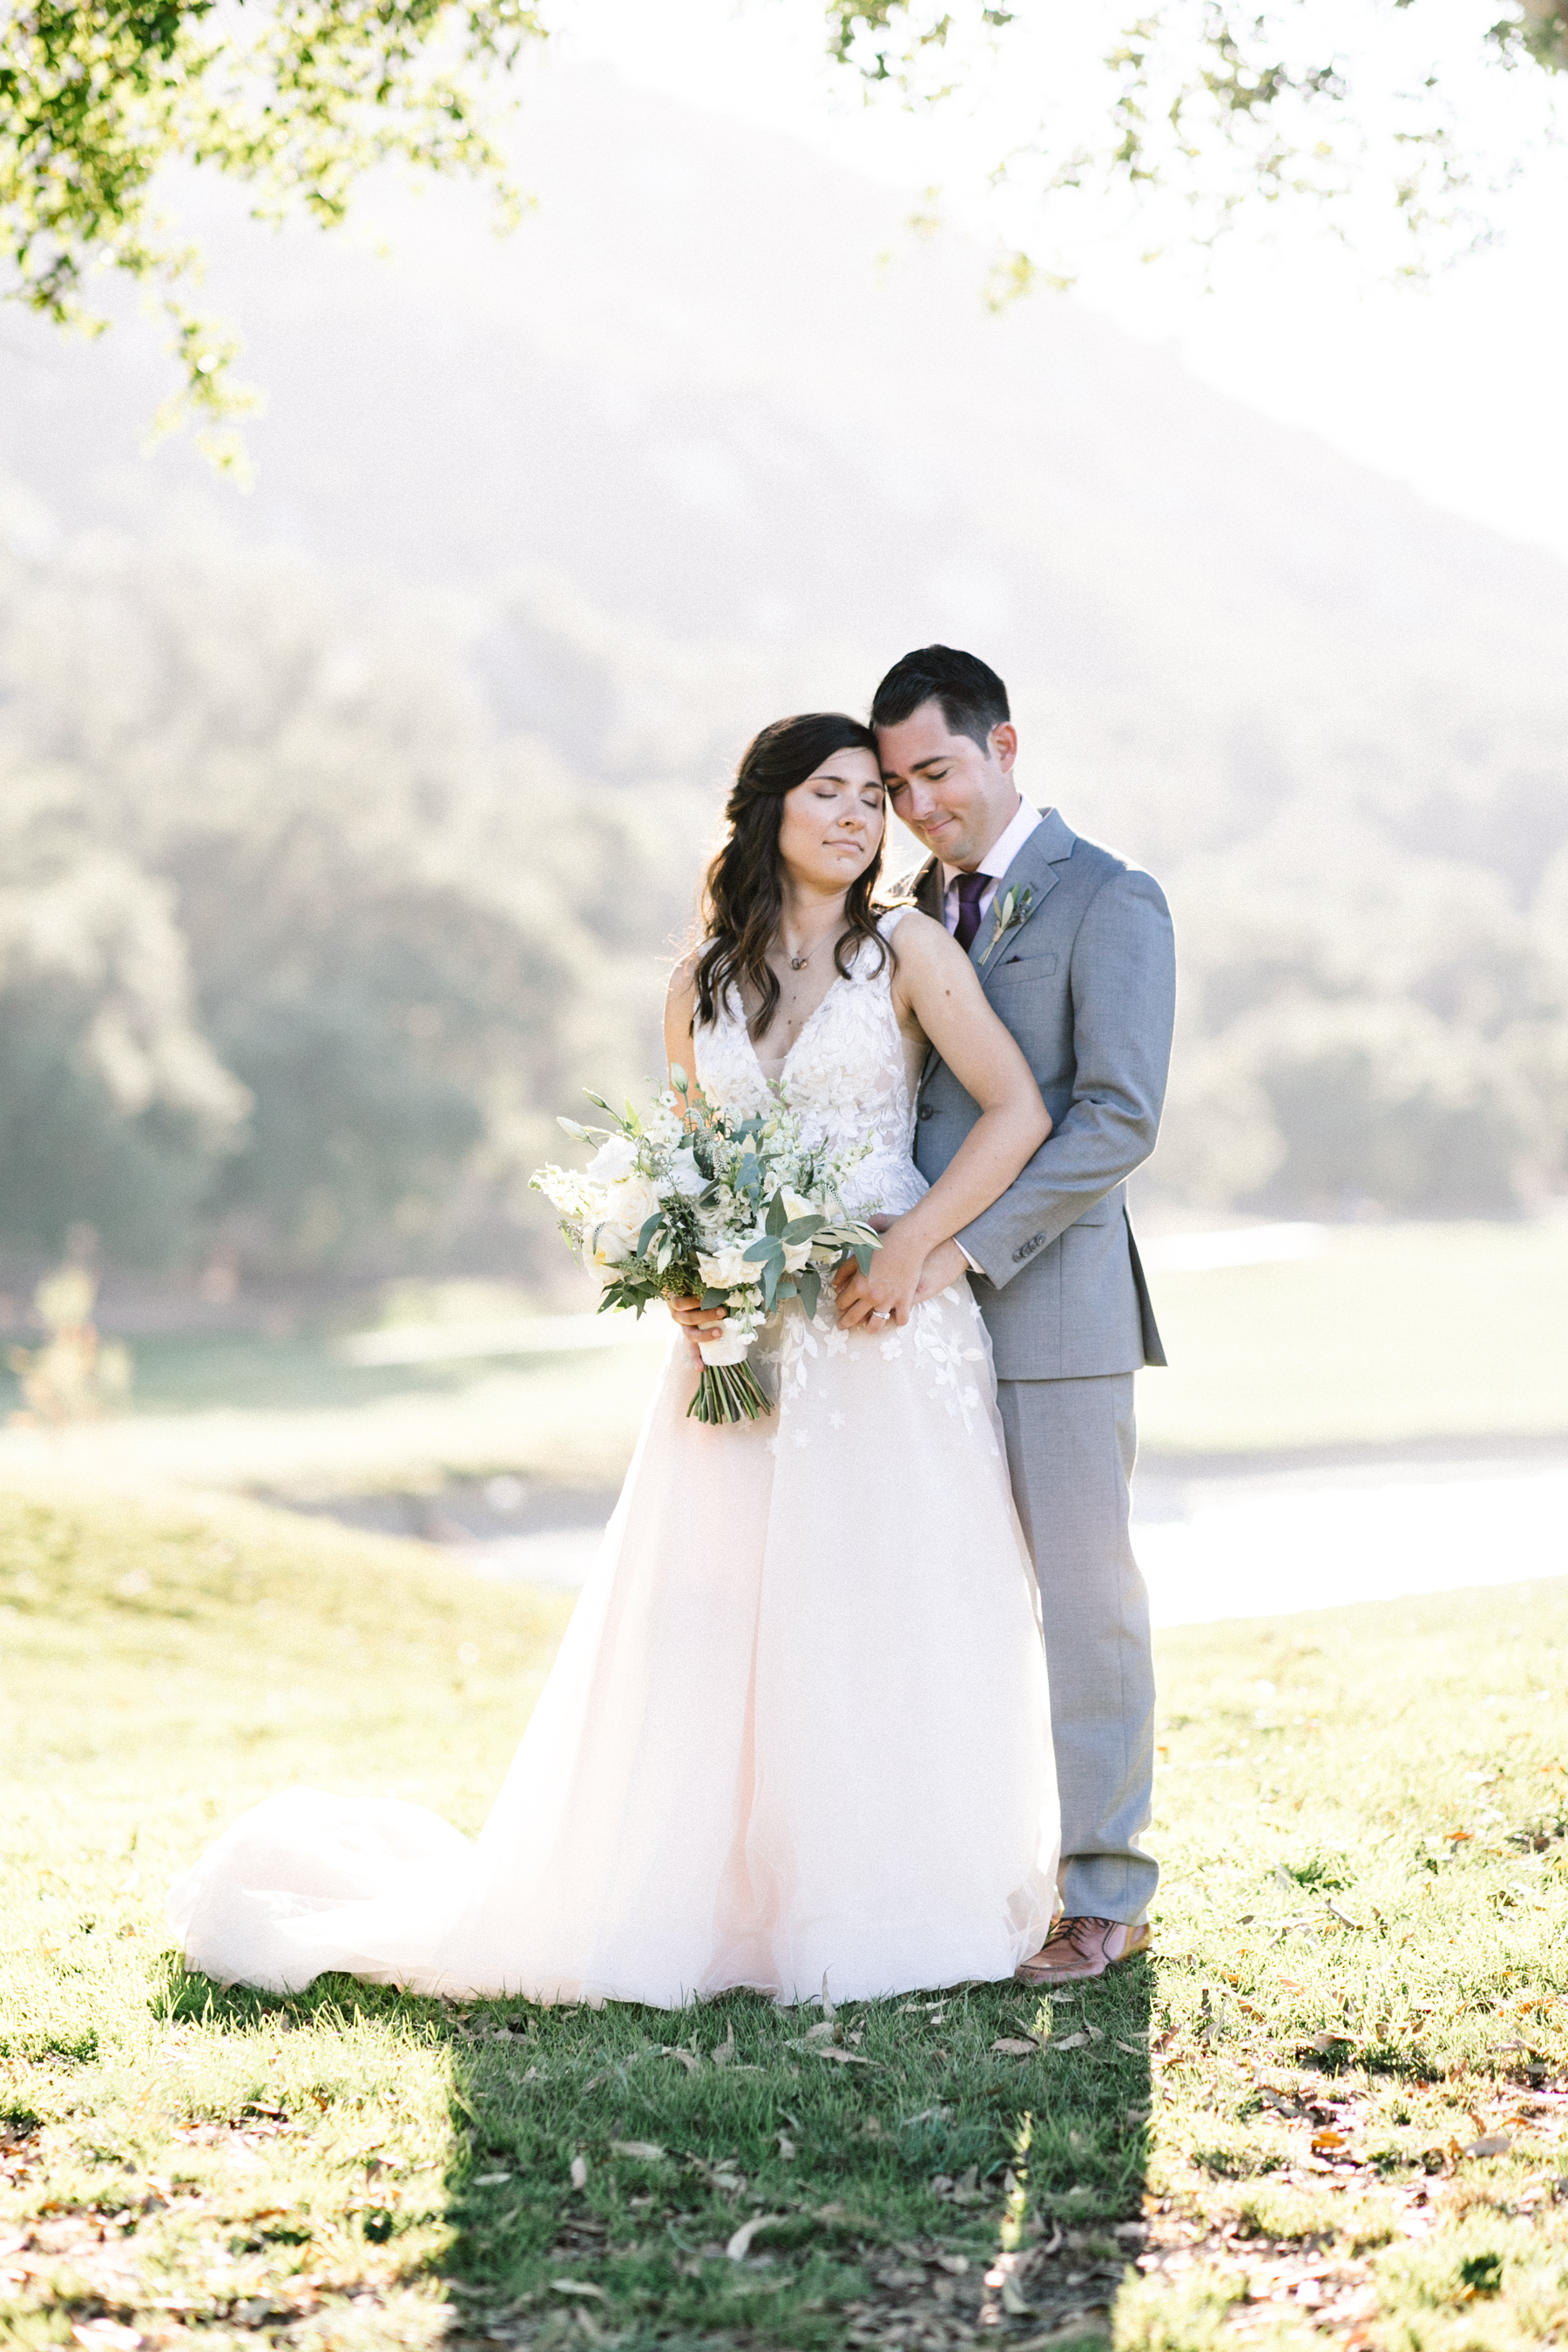 Jordan and Alex's Mt. Woodson Ramona Wedding Great Woodland Photography 8-31-19-29.jpg